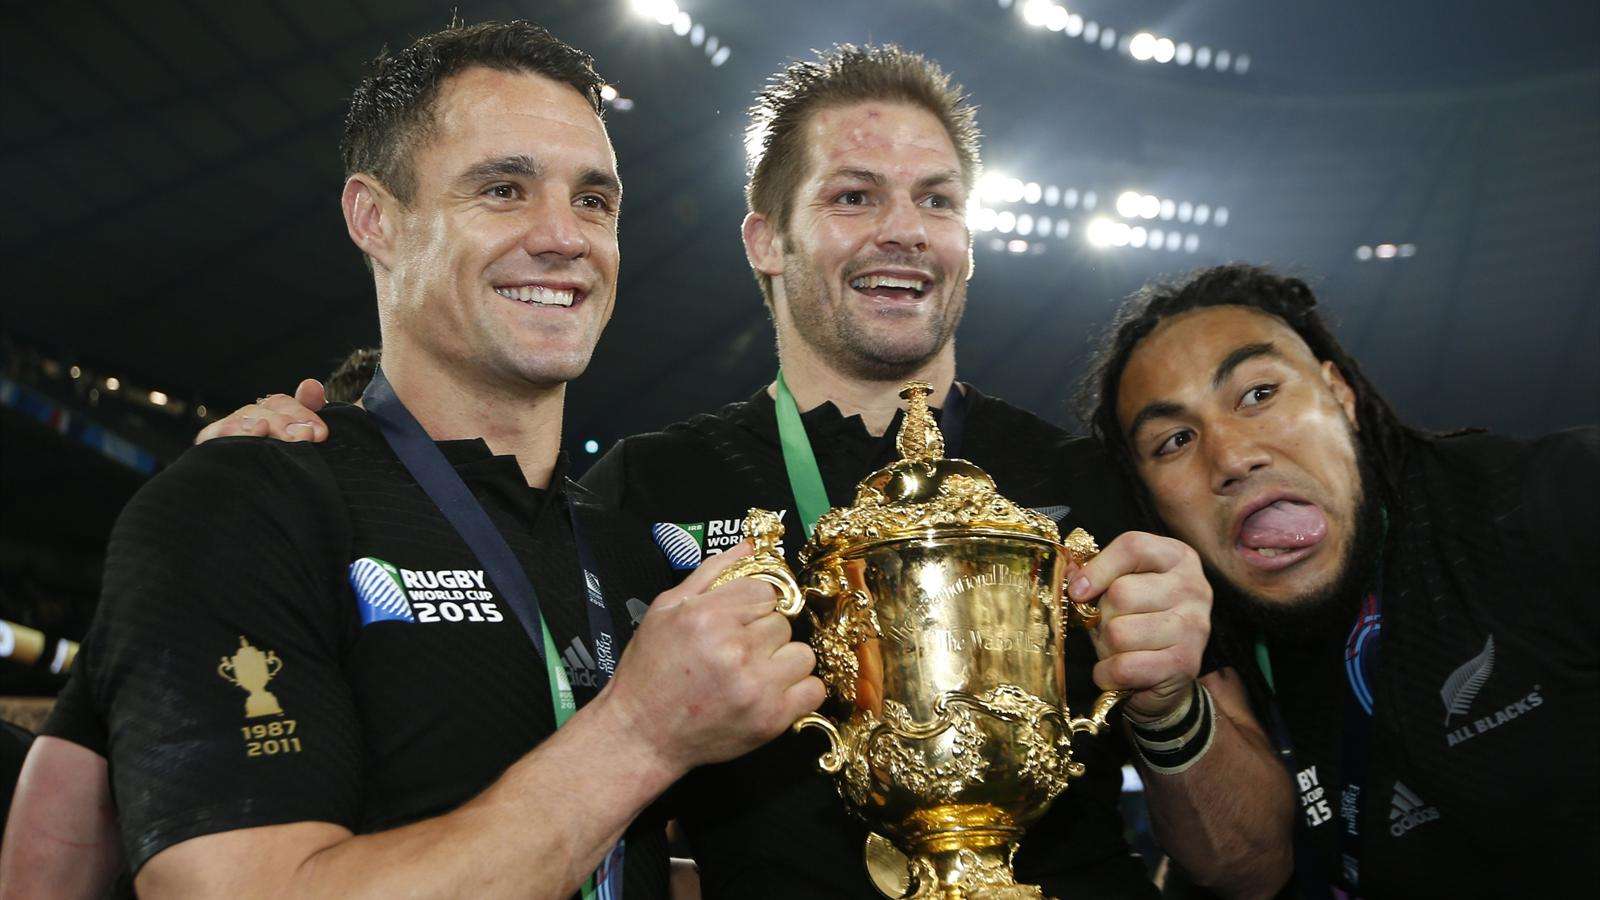 Richie McCaw of New Zealand (C) holds the Webb Ellis Cup as he celebrates with teammates Dan Carter (L) and Ma'a Nonu (R) after beating Australia to win the Rugby World Cup final match at Twickenham